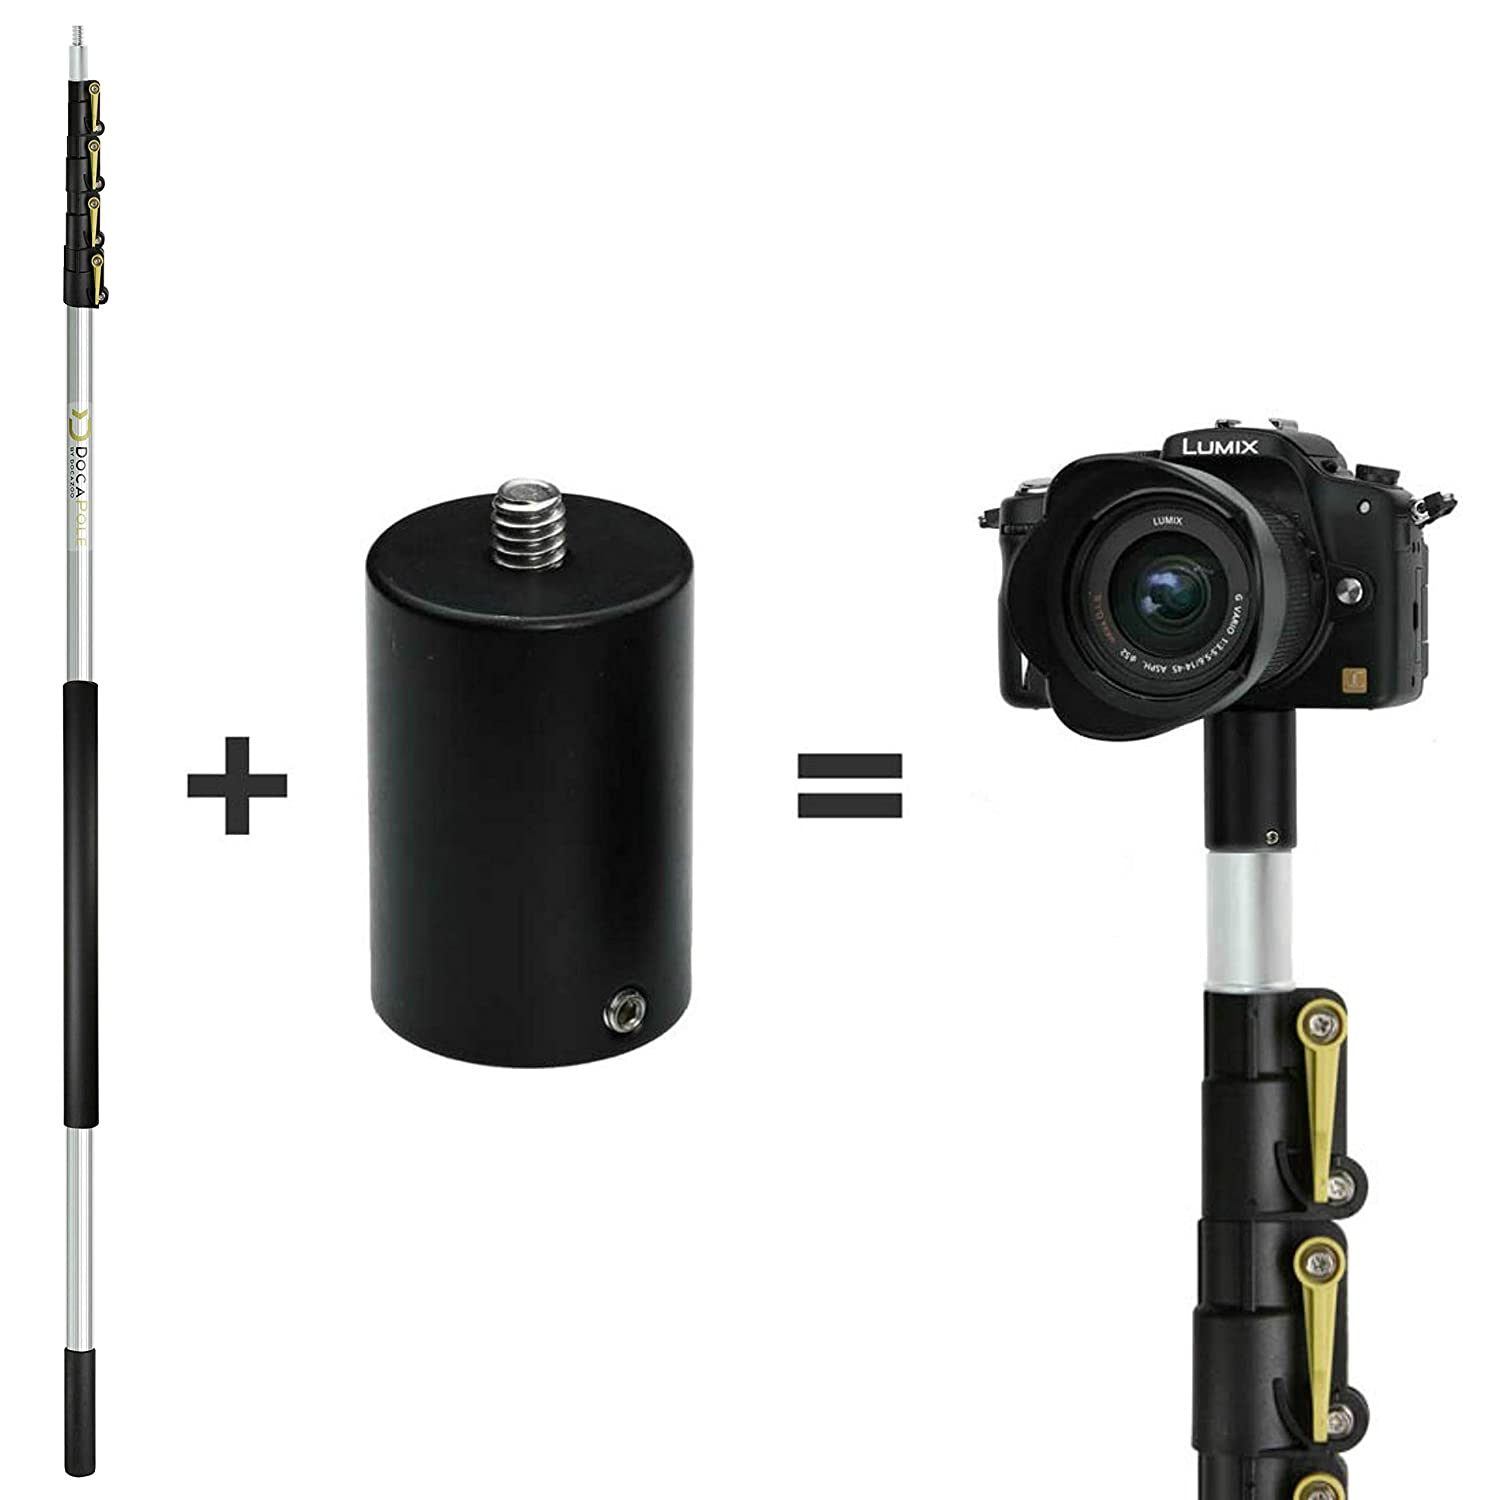 DocaPole 24 Foot Camera Pole – 6-24 ft Extension Pole + ClickSnap Camera  Adapter for GoPro, Camera or Video Camera | Provides up to 30 Feet of Reach  |